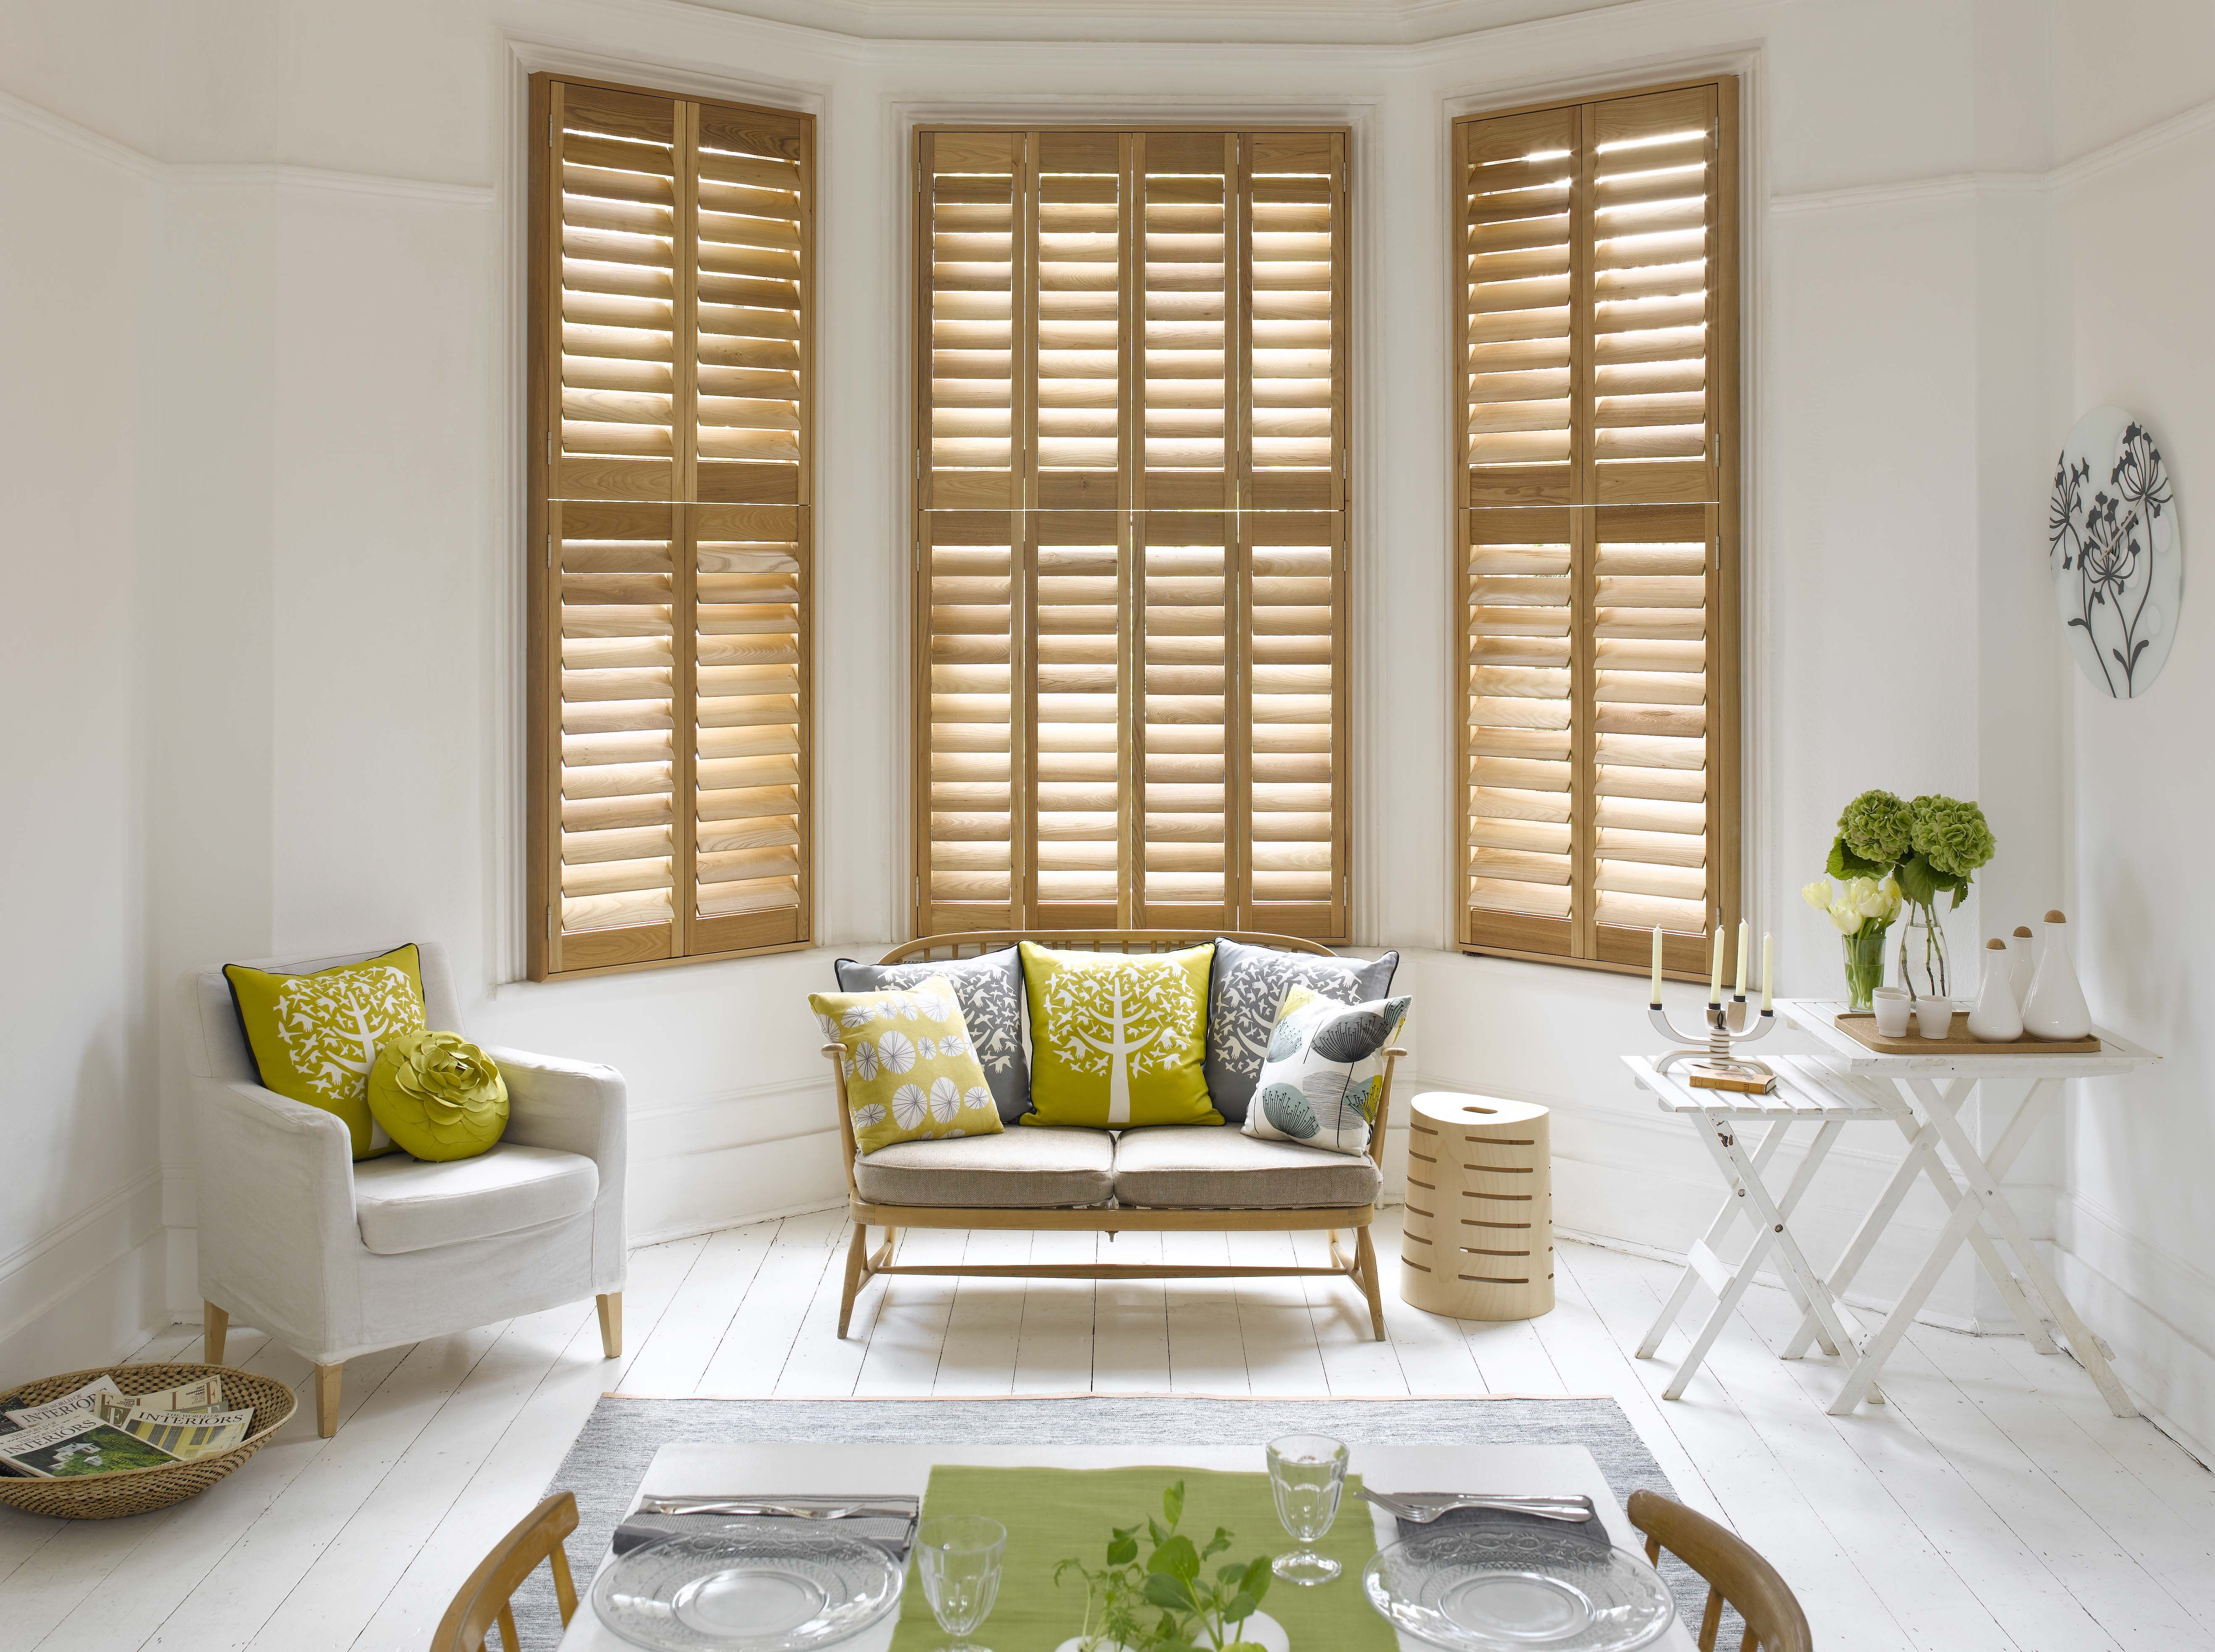 Shutters 50 Off Rrp The Shutter Store With Sarah Beeny Interior Shutters Modern Interior Shutters Interior Window Shutters